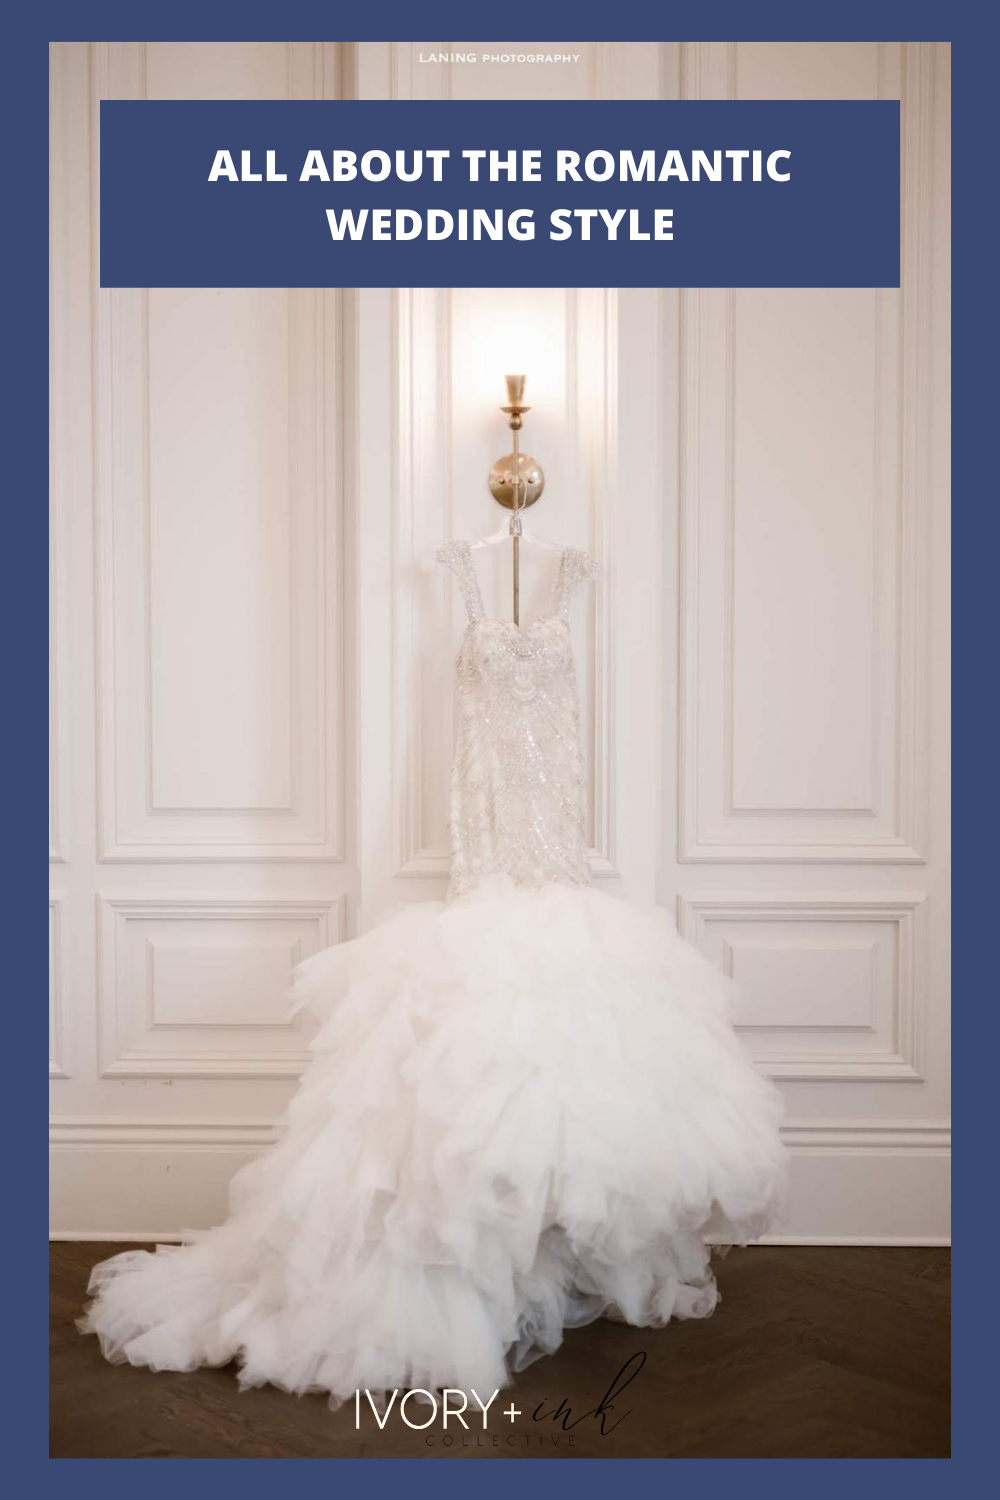 All About the Romantic Wedding Style